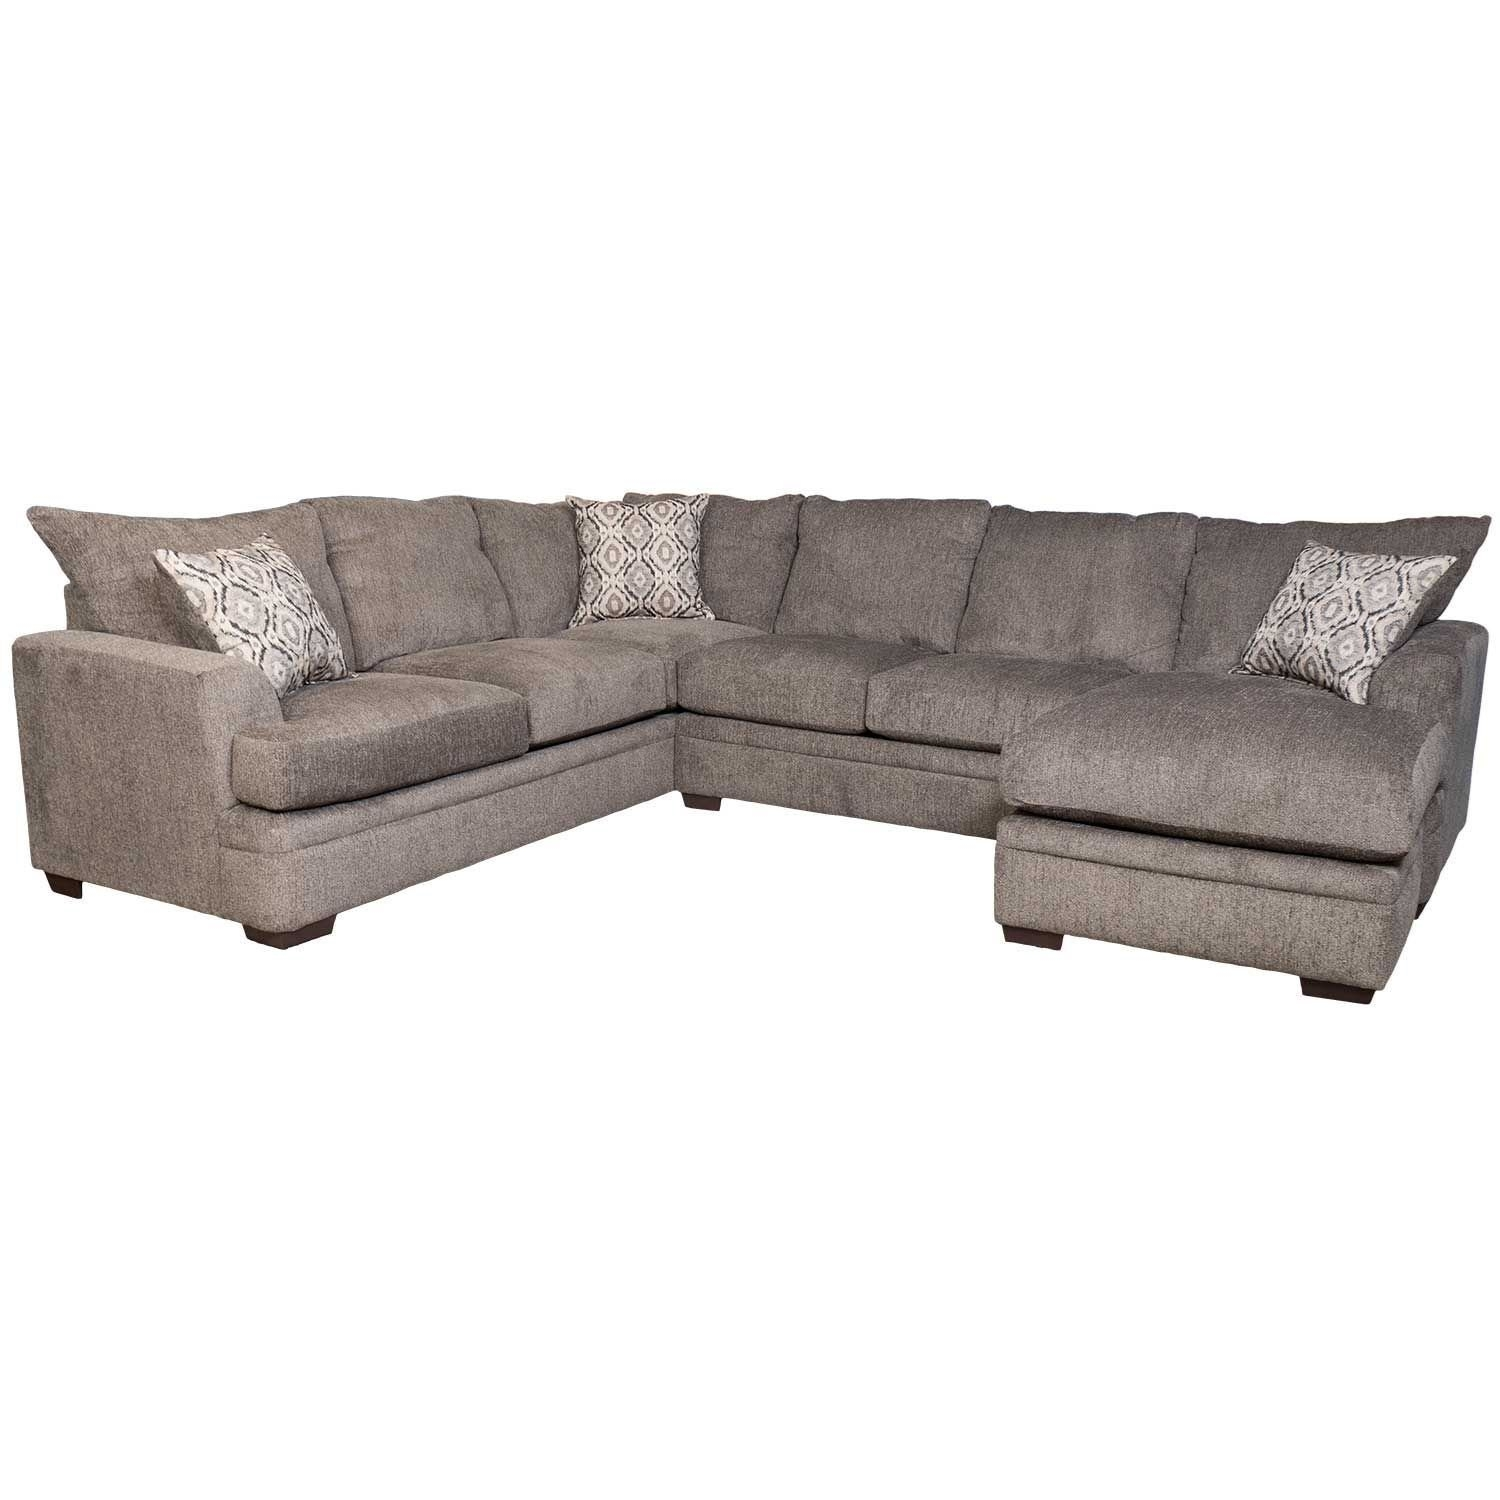 2Pc Pewter Raf Sectional W/chaise C2-68Rc-2Pc | Afw | Afw in Evan 2 Piece Sectionals With Raf Chaise (Image 3 of 30)